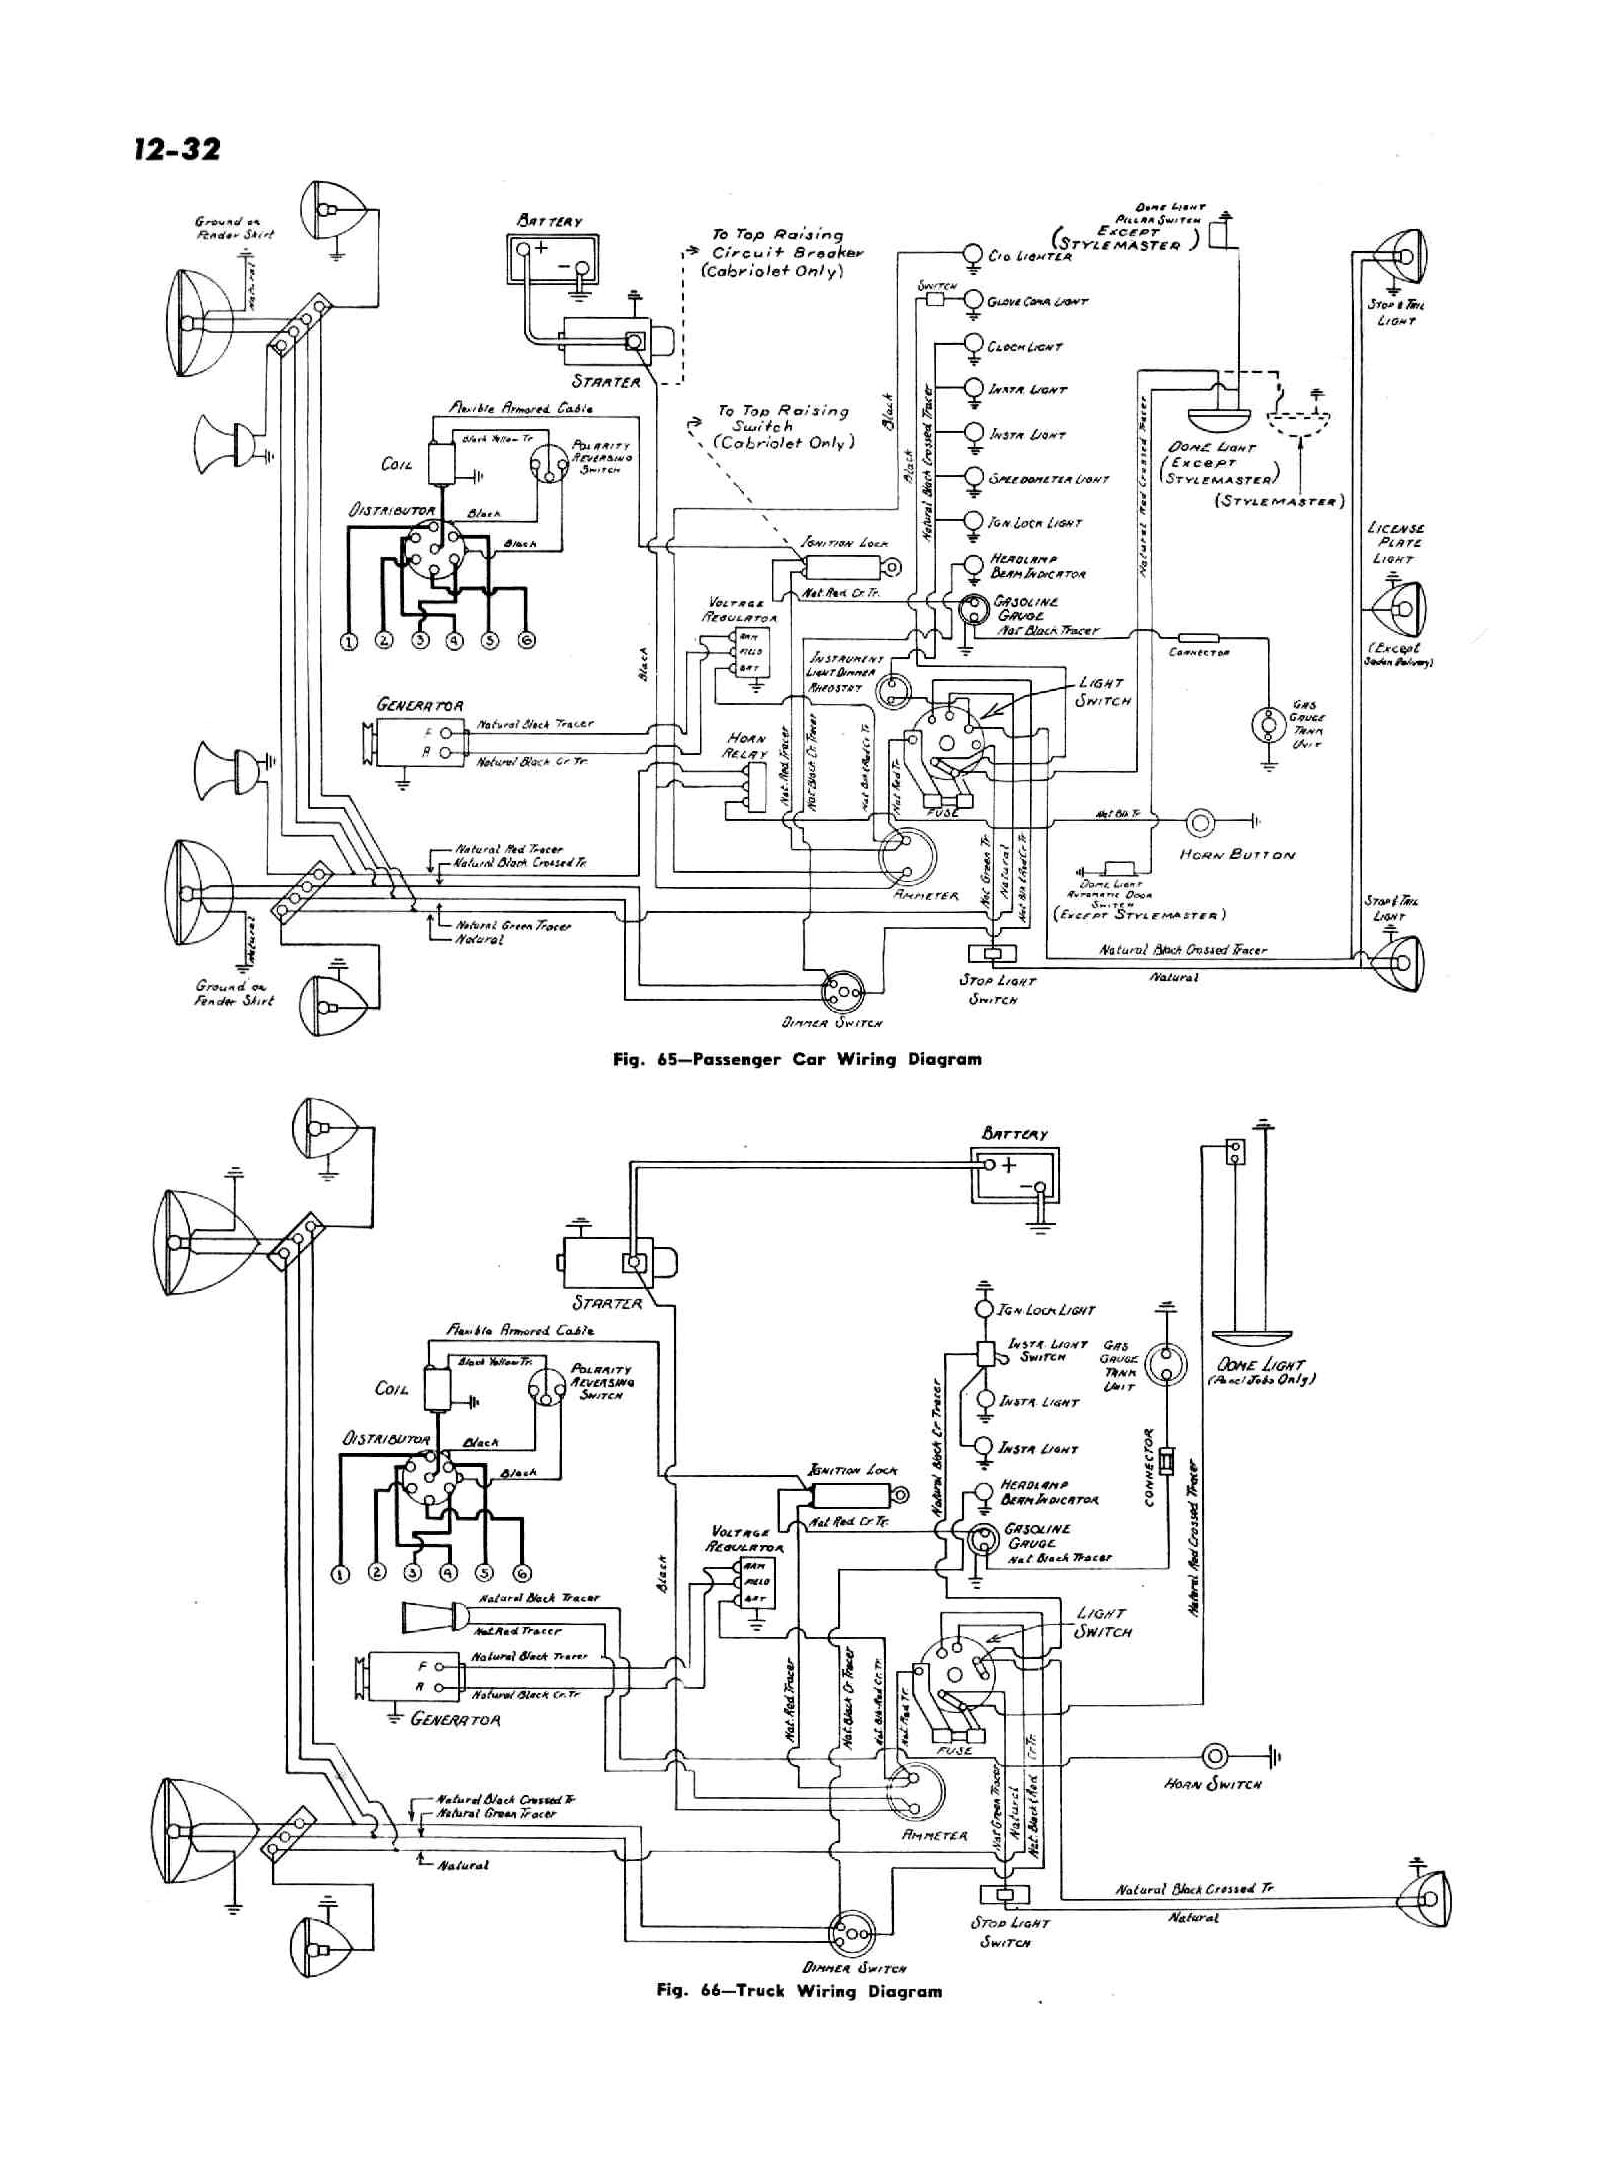 4247csm1232 chevy wiring diagrams  at gsmx.co